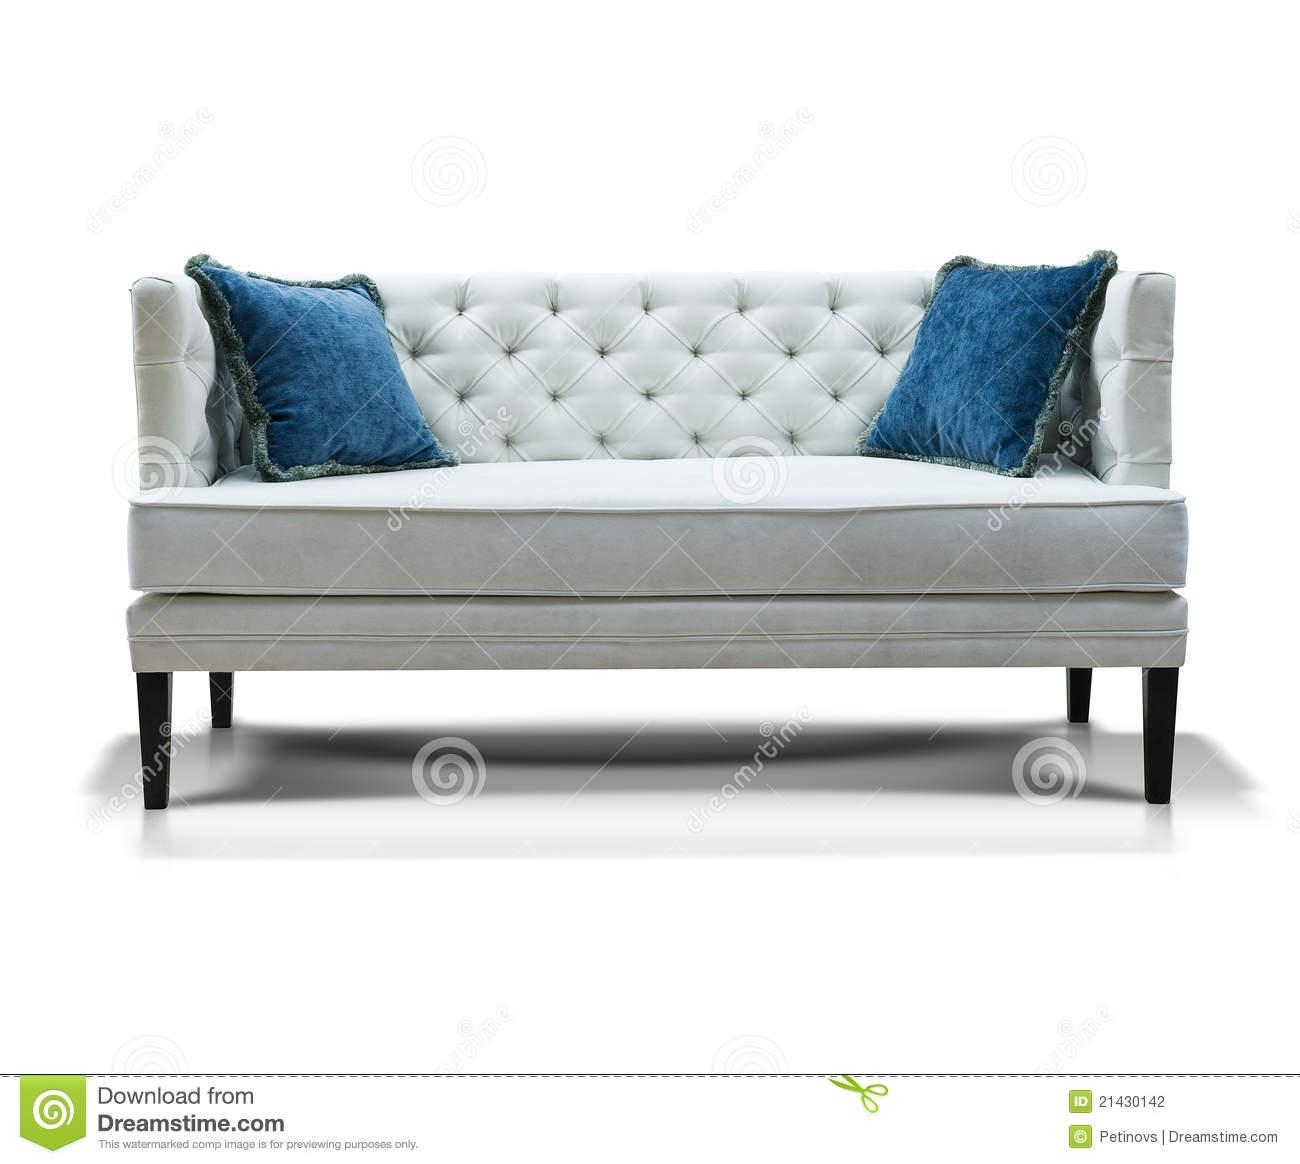 Featured Image of Blue And White Sofas